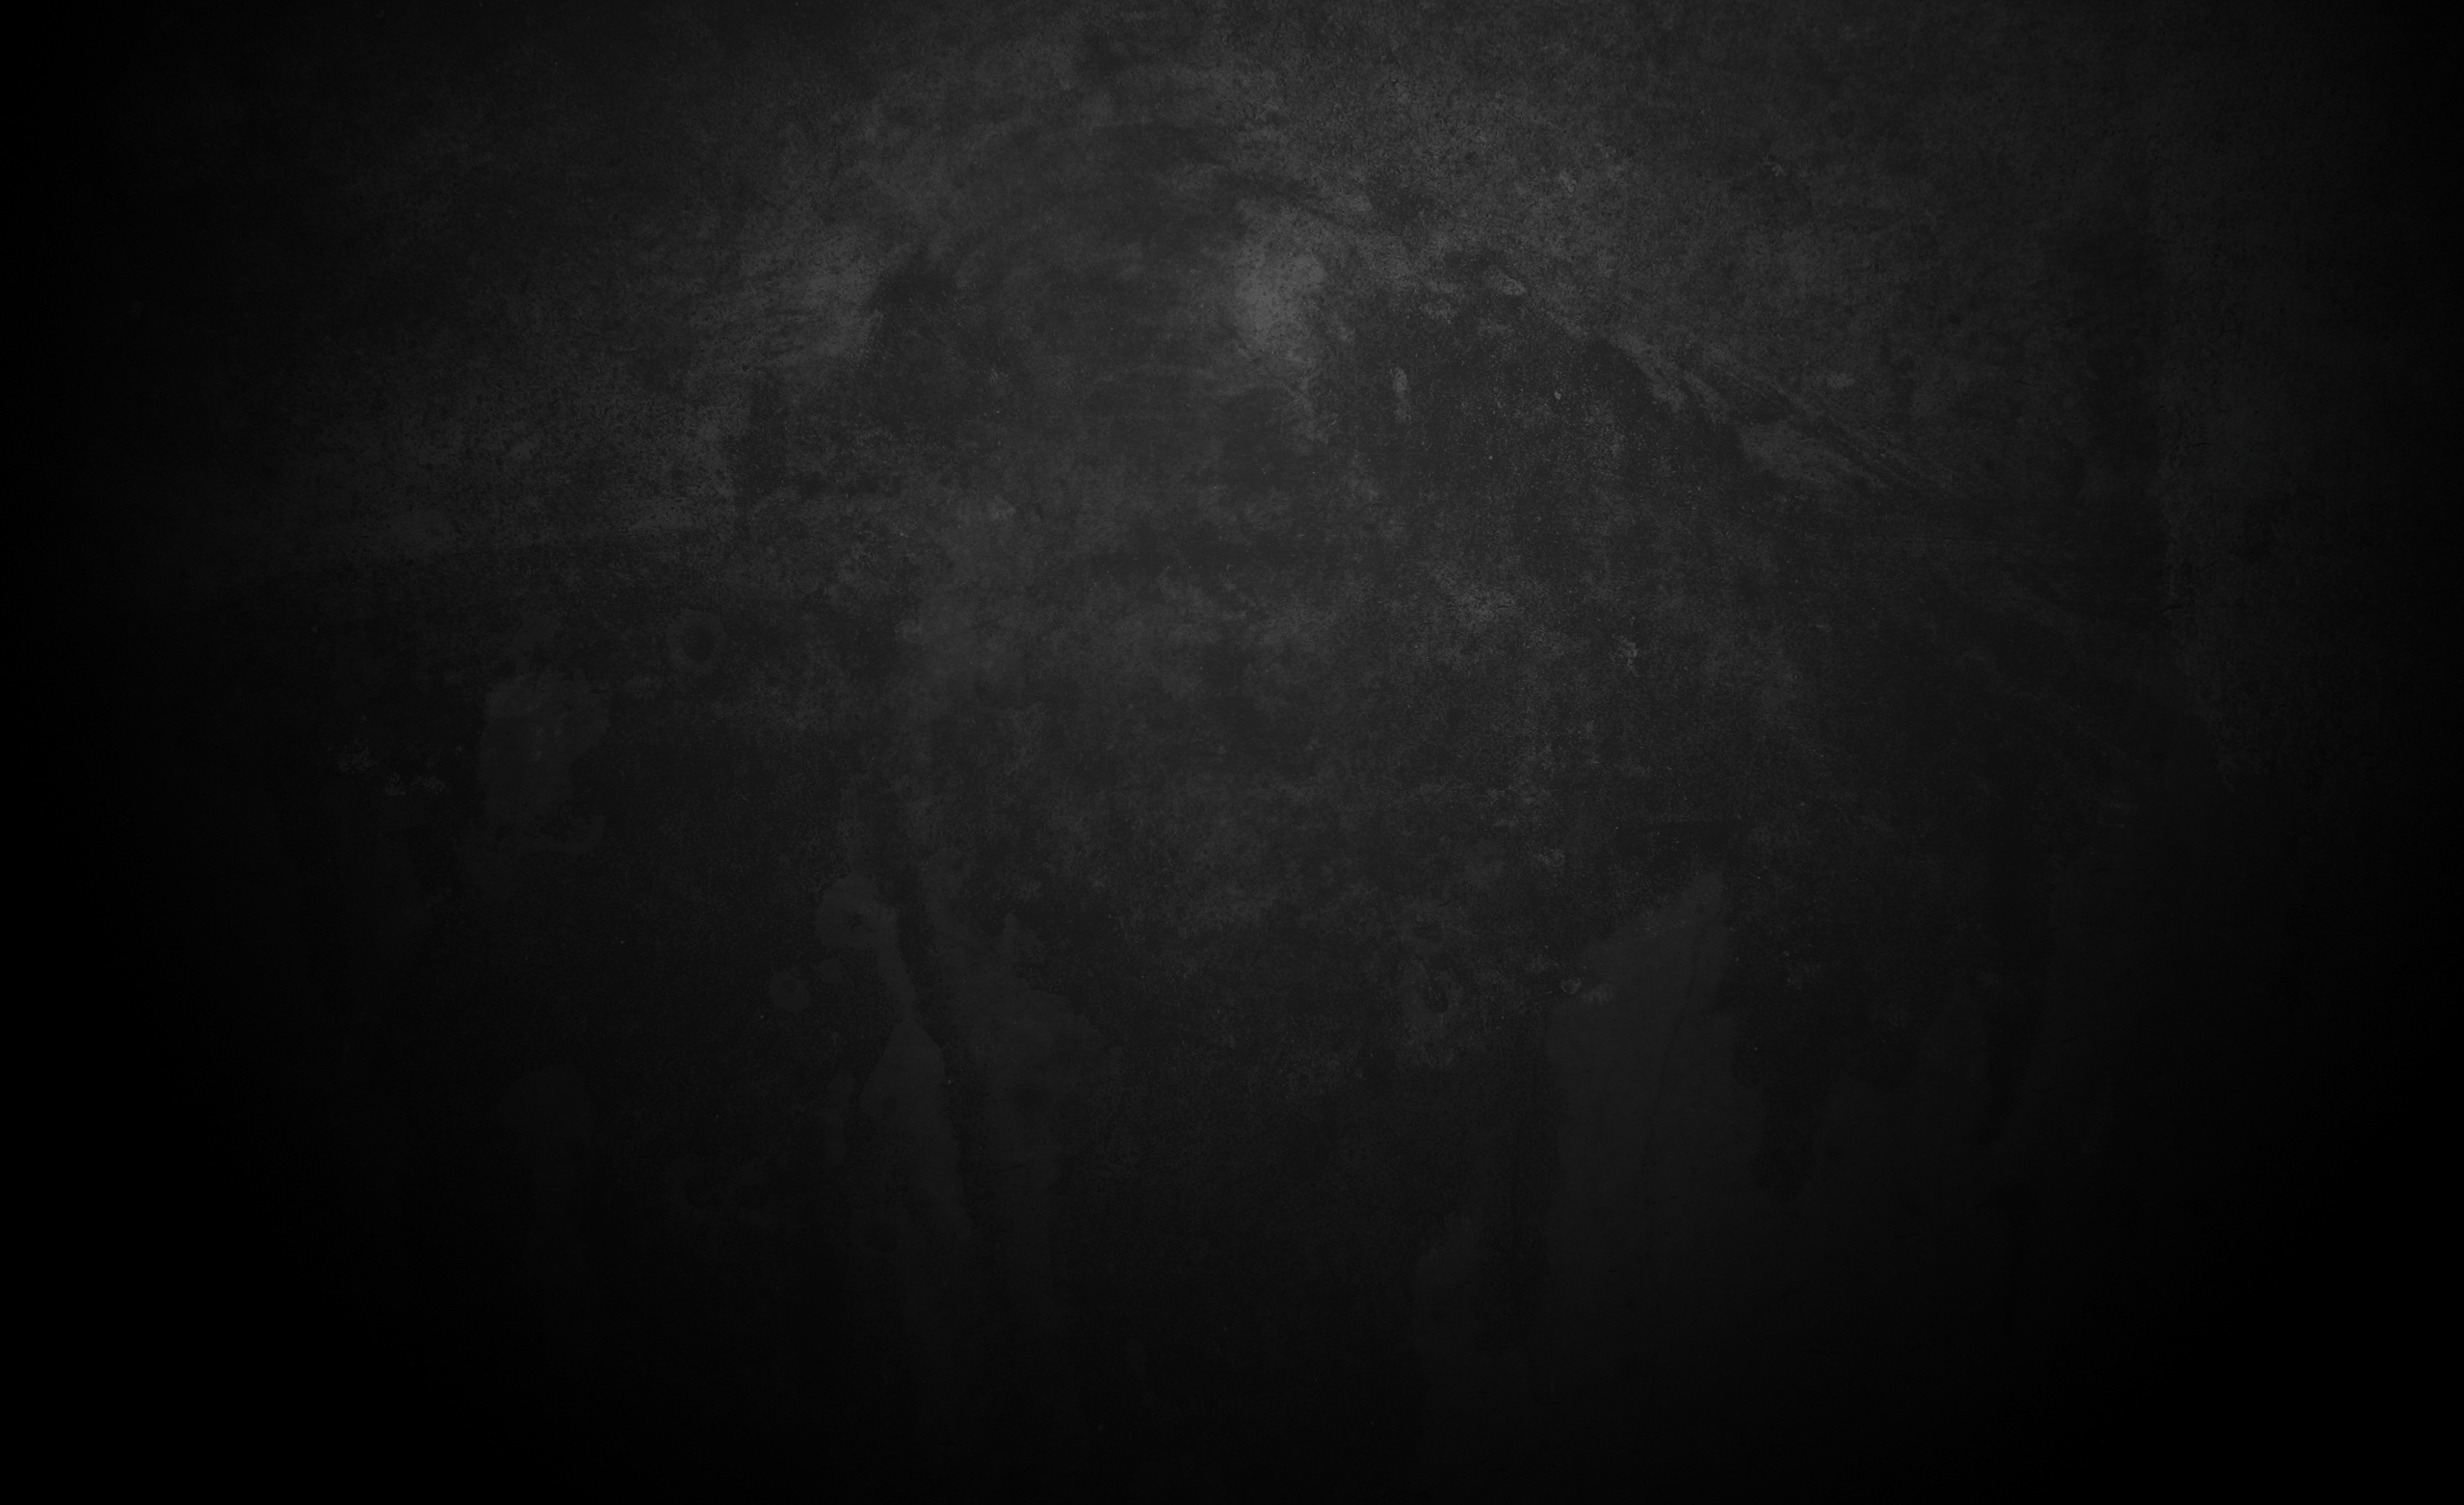 Black photoshop background png #24712.